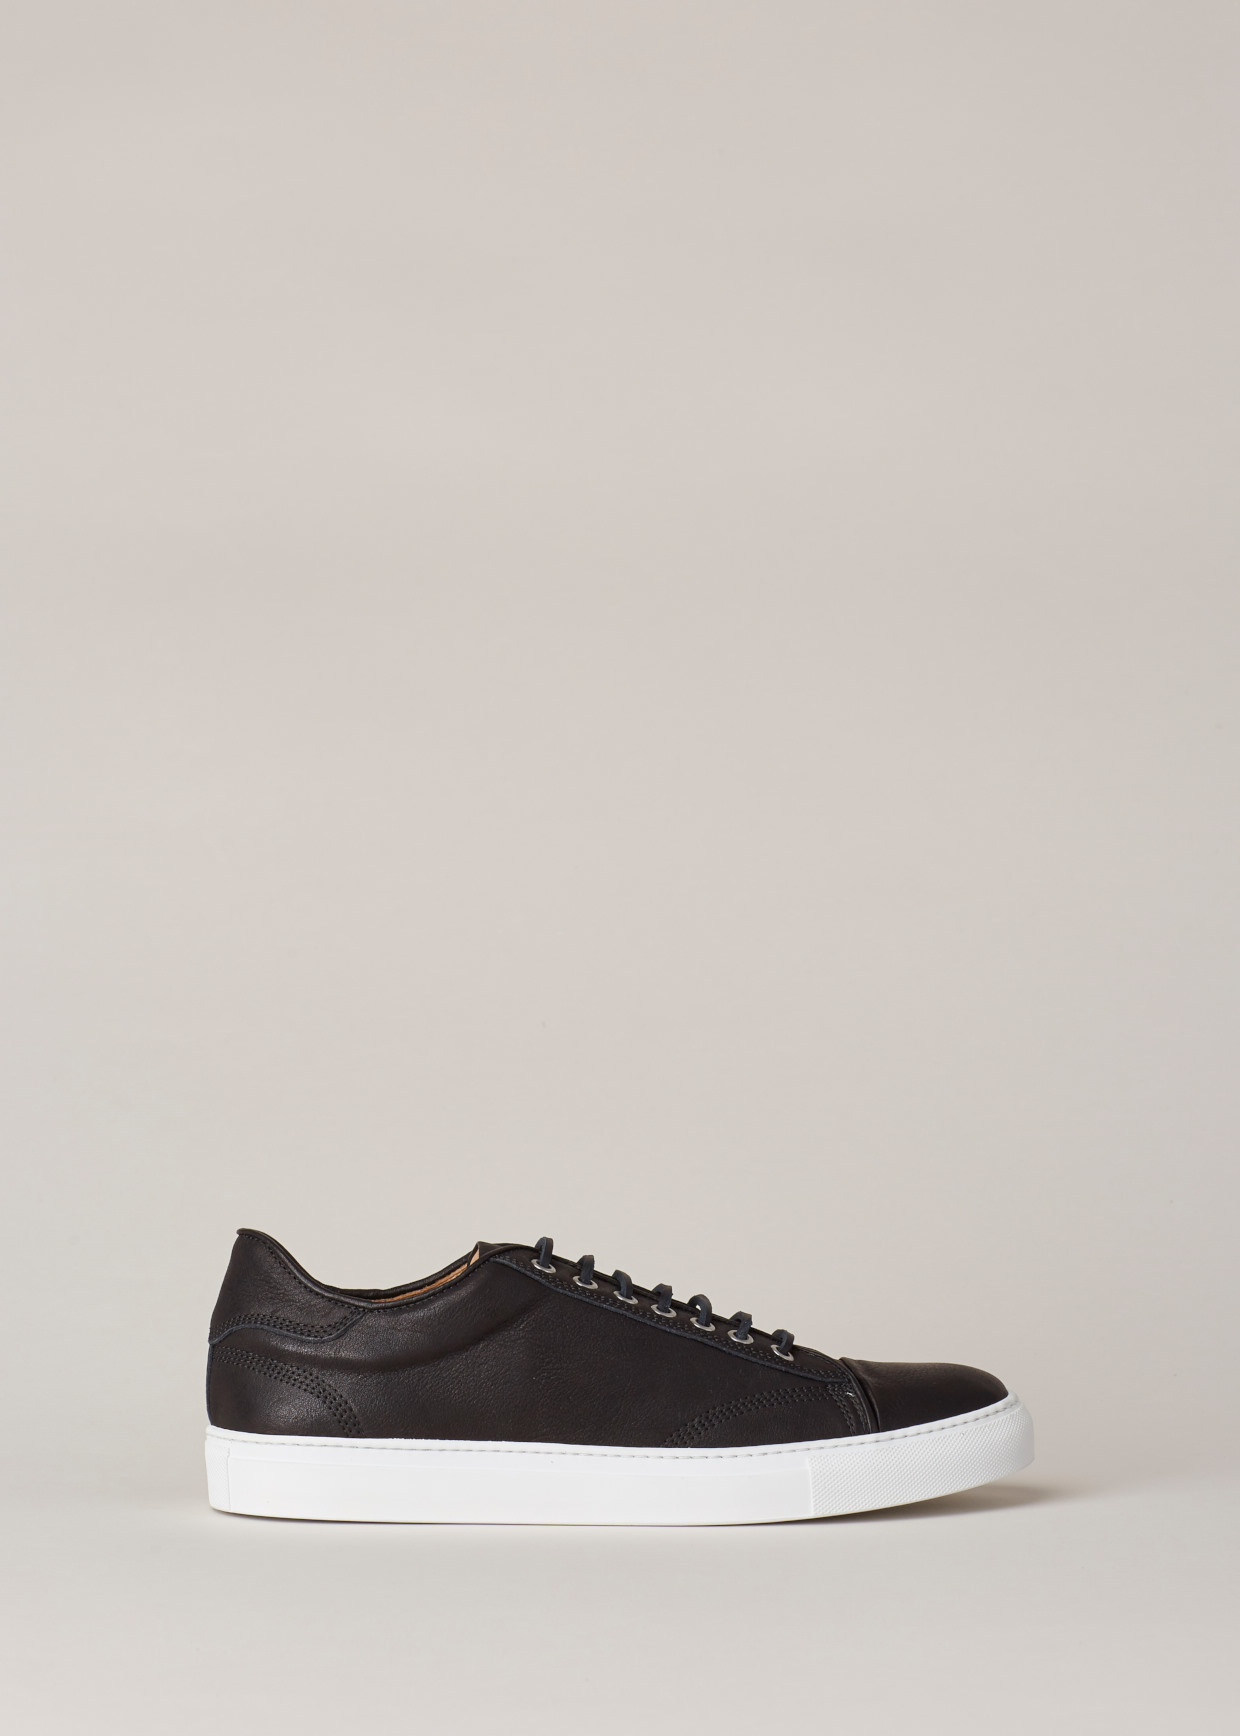 d664779b56a7 Lyst - Wings + Horns Black white Leather Low Top Sneaker in Black ...